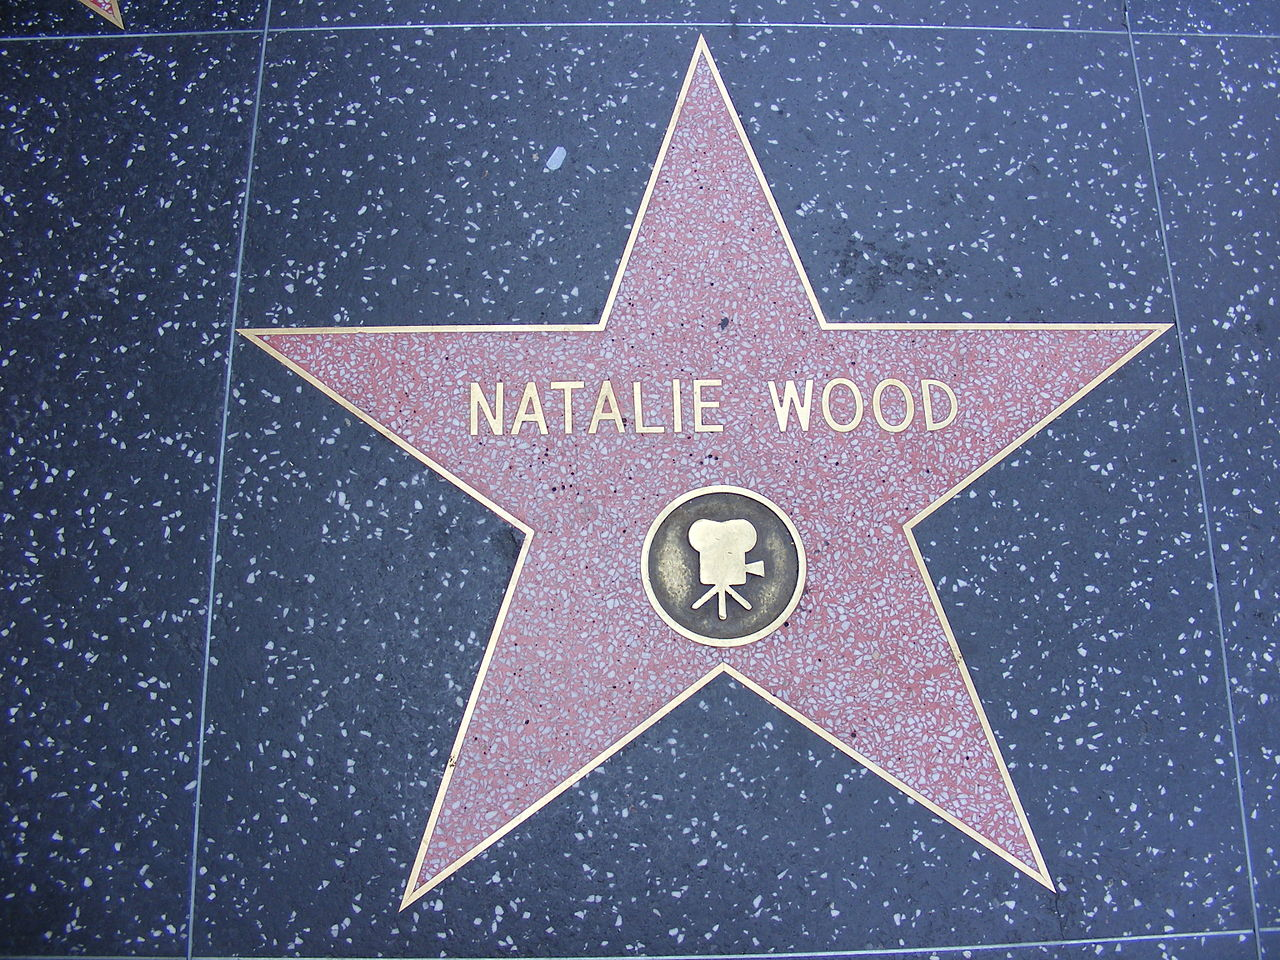 1280px-Natalie_Wood_Hollywood_star.jpg